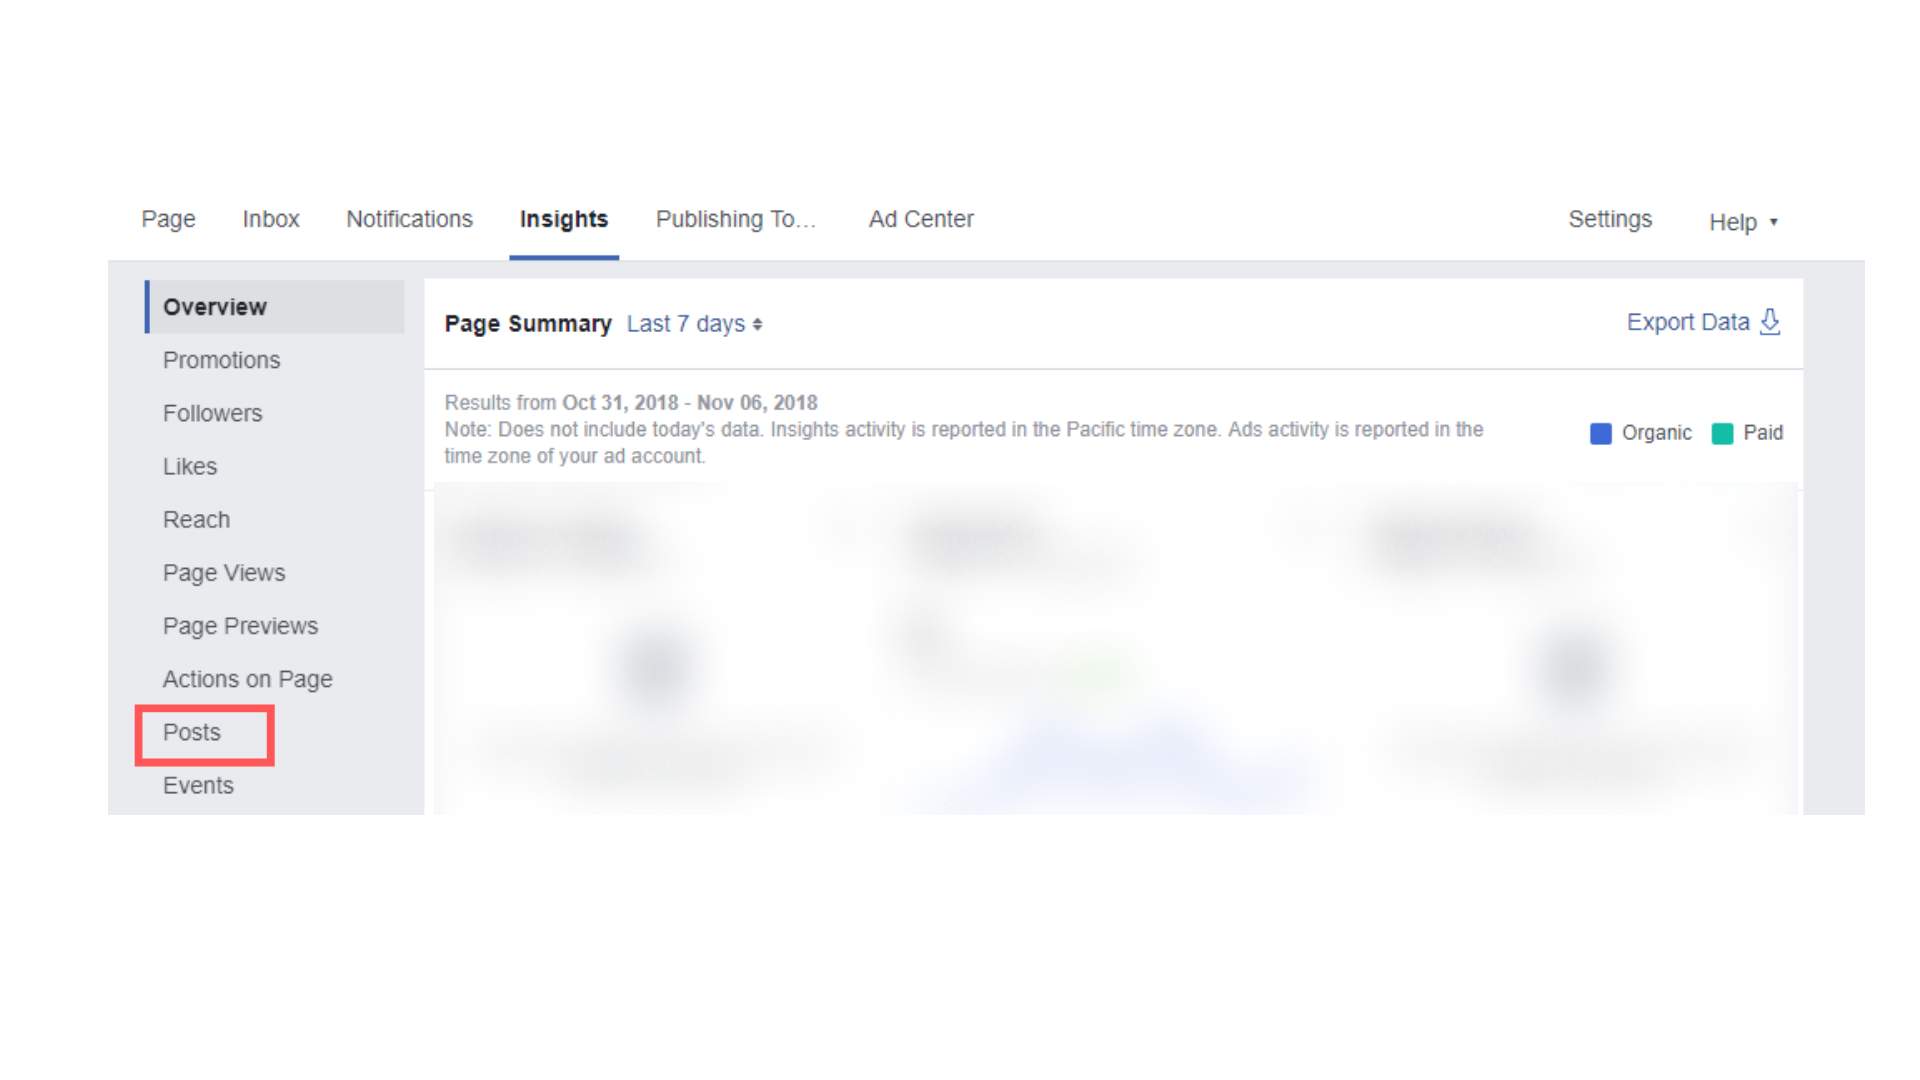 Como usar insights do facebook 2